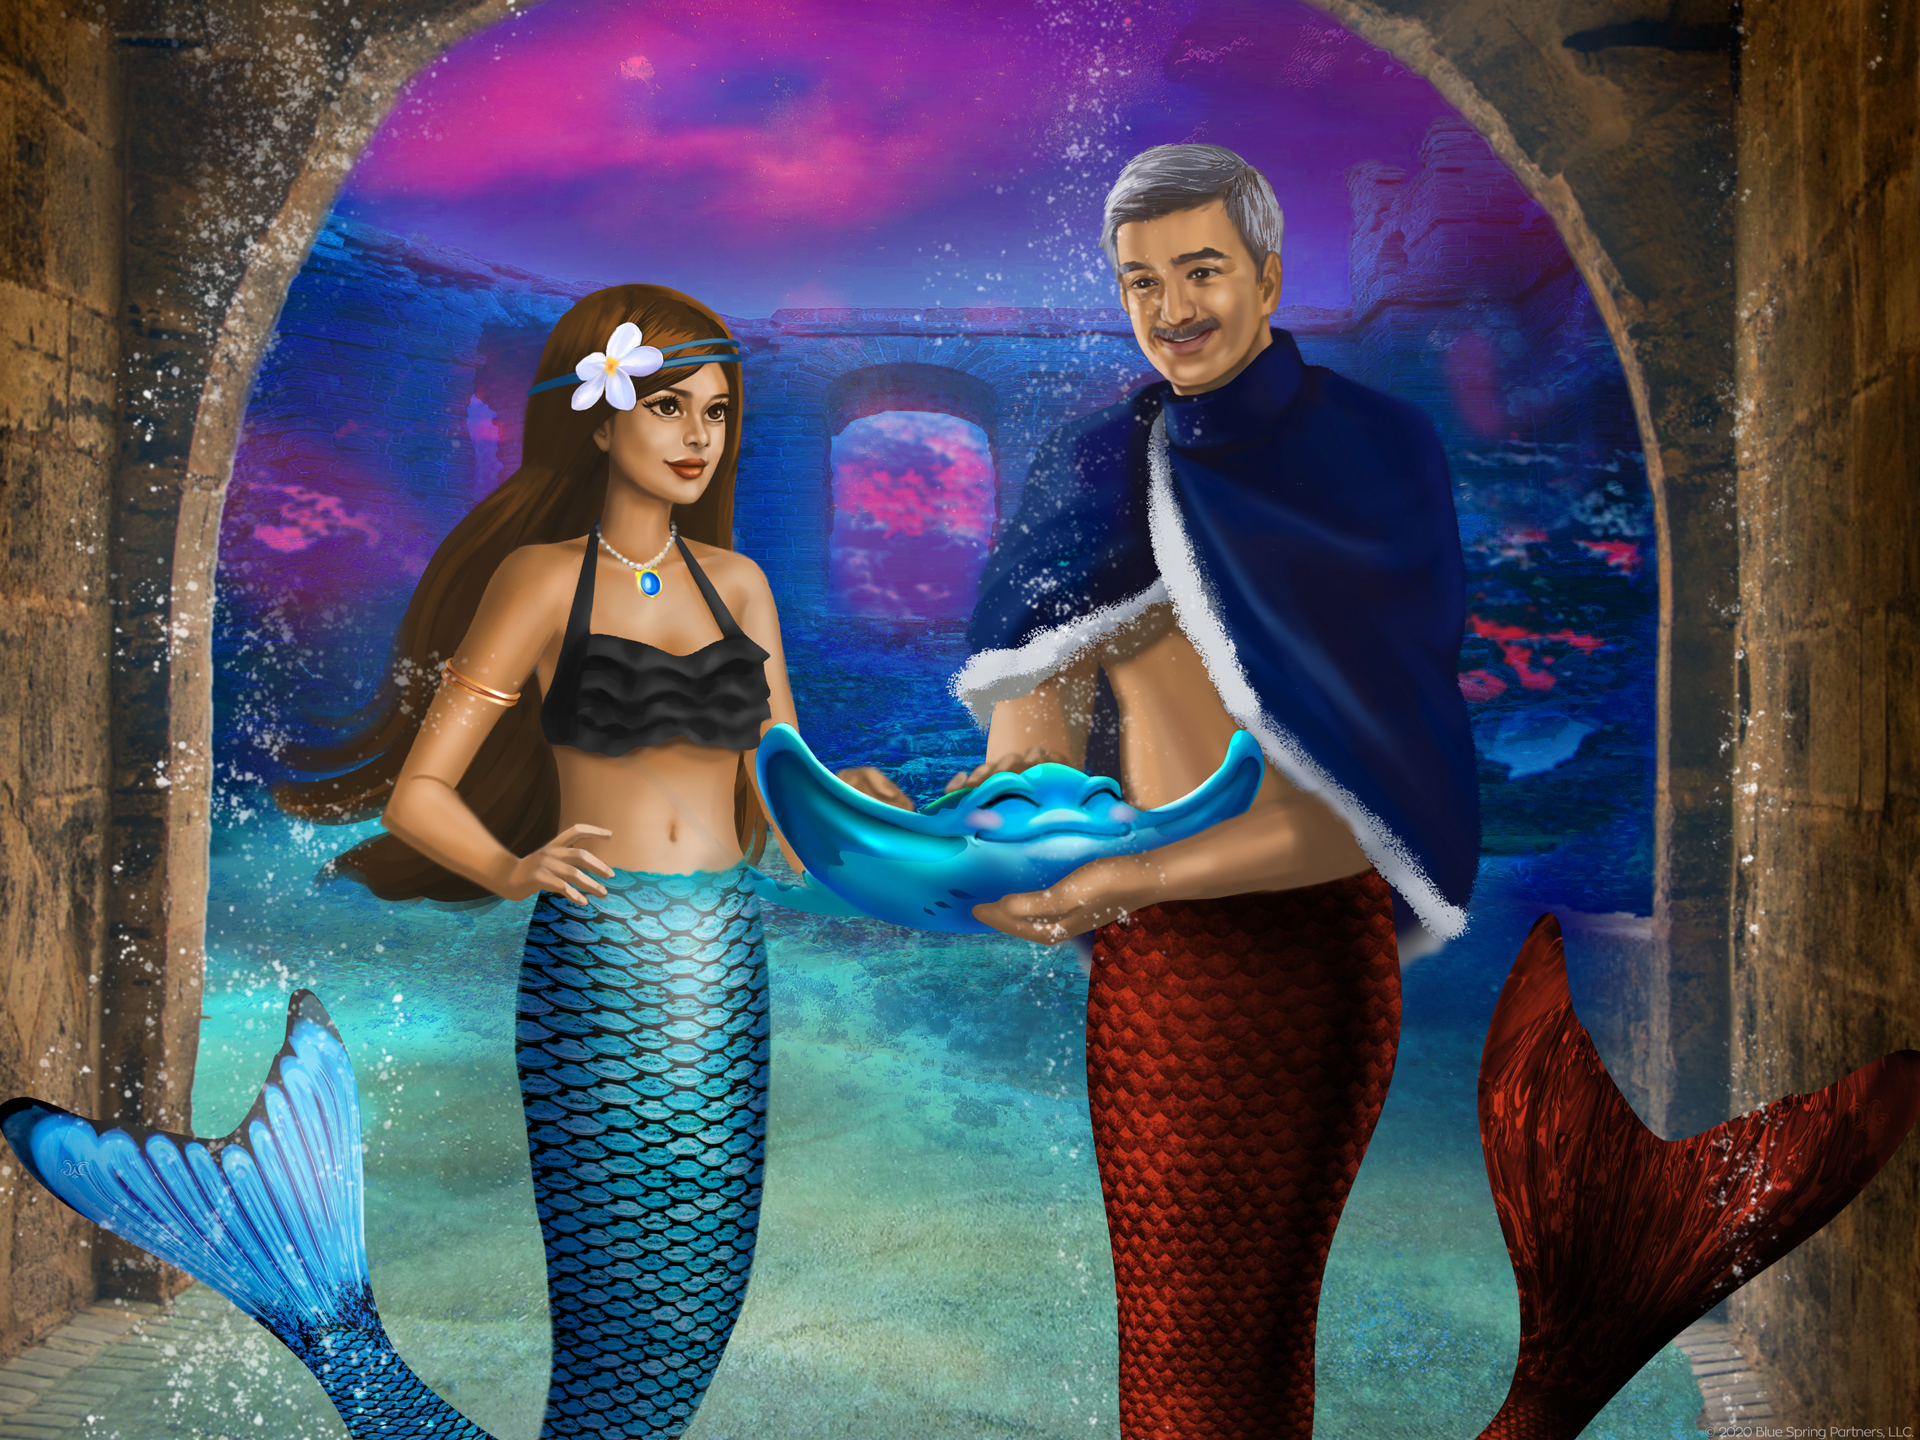 Mermaiden Mariana and MerKing Caspian beside each other while Caspian holds Rico the stingray